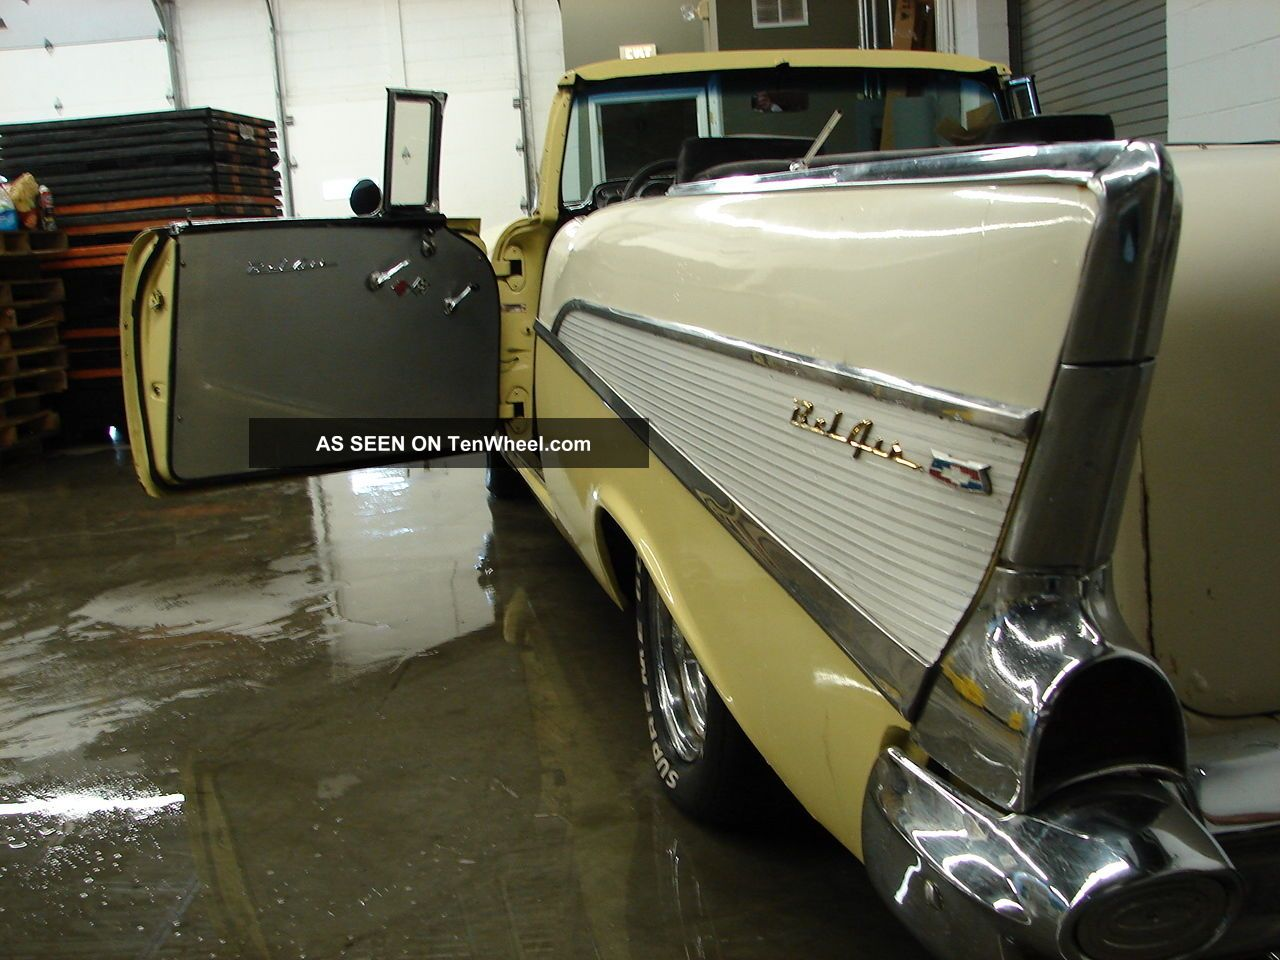 Awesome Custom 1957 Chevy Belair Convertible 350 V8 Looks Runs Bel Air Project